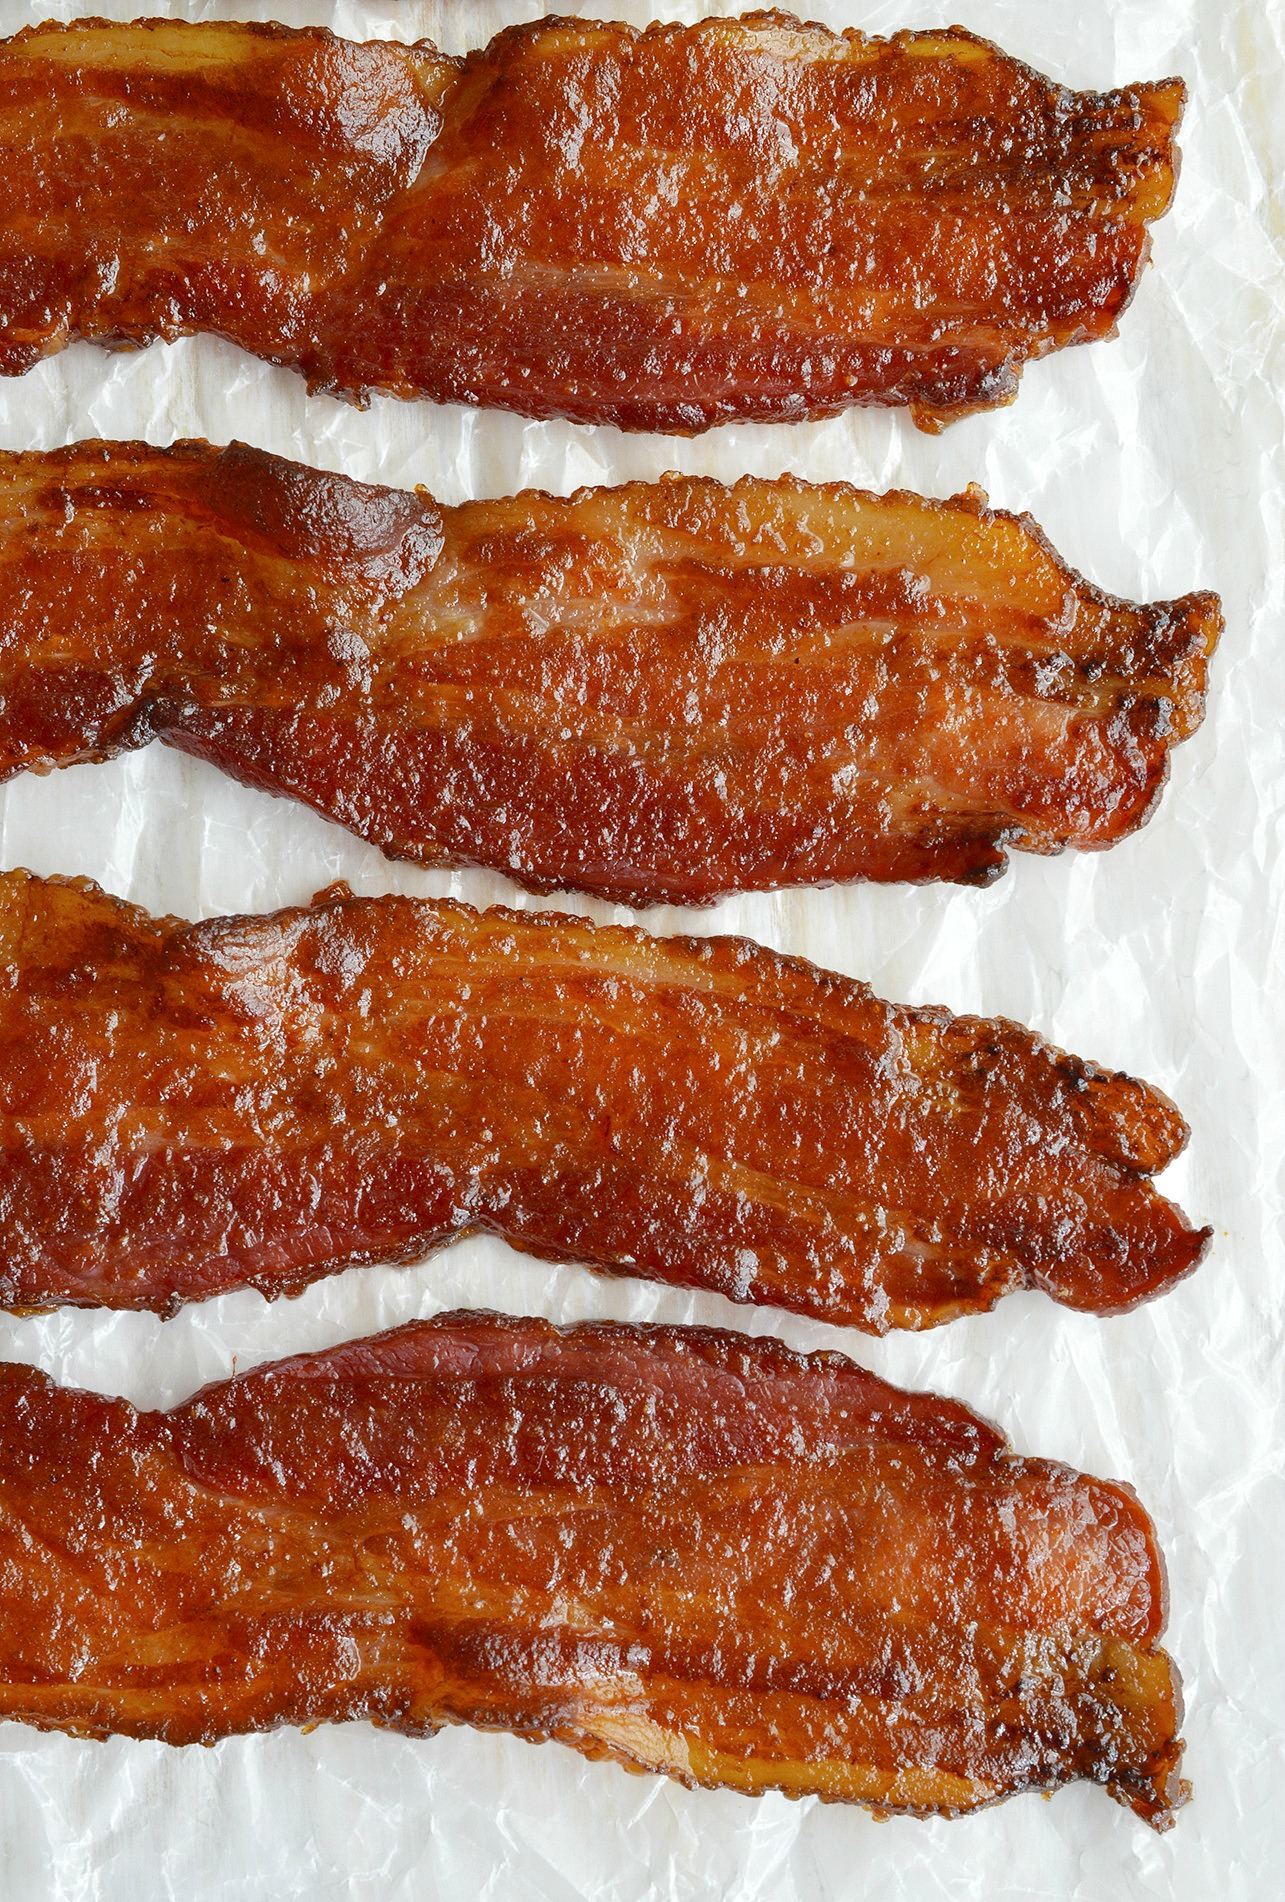 This Candied Bacon Recipe should be illegal. It IS that good! Just 3 ingredients make a glazed bacon that is sweet, salty, crispy and super addictive. This apple butter glazed bacon is perfect for any meal or occasion!